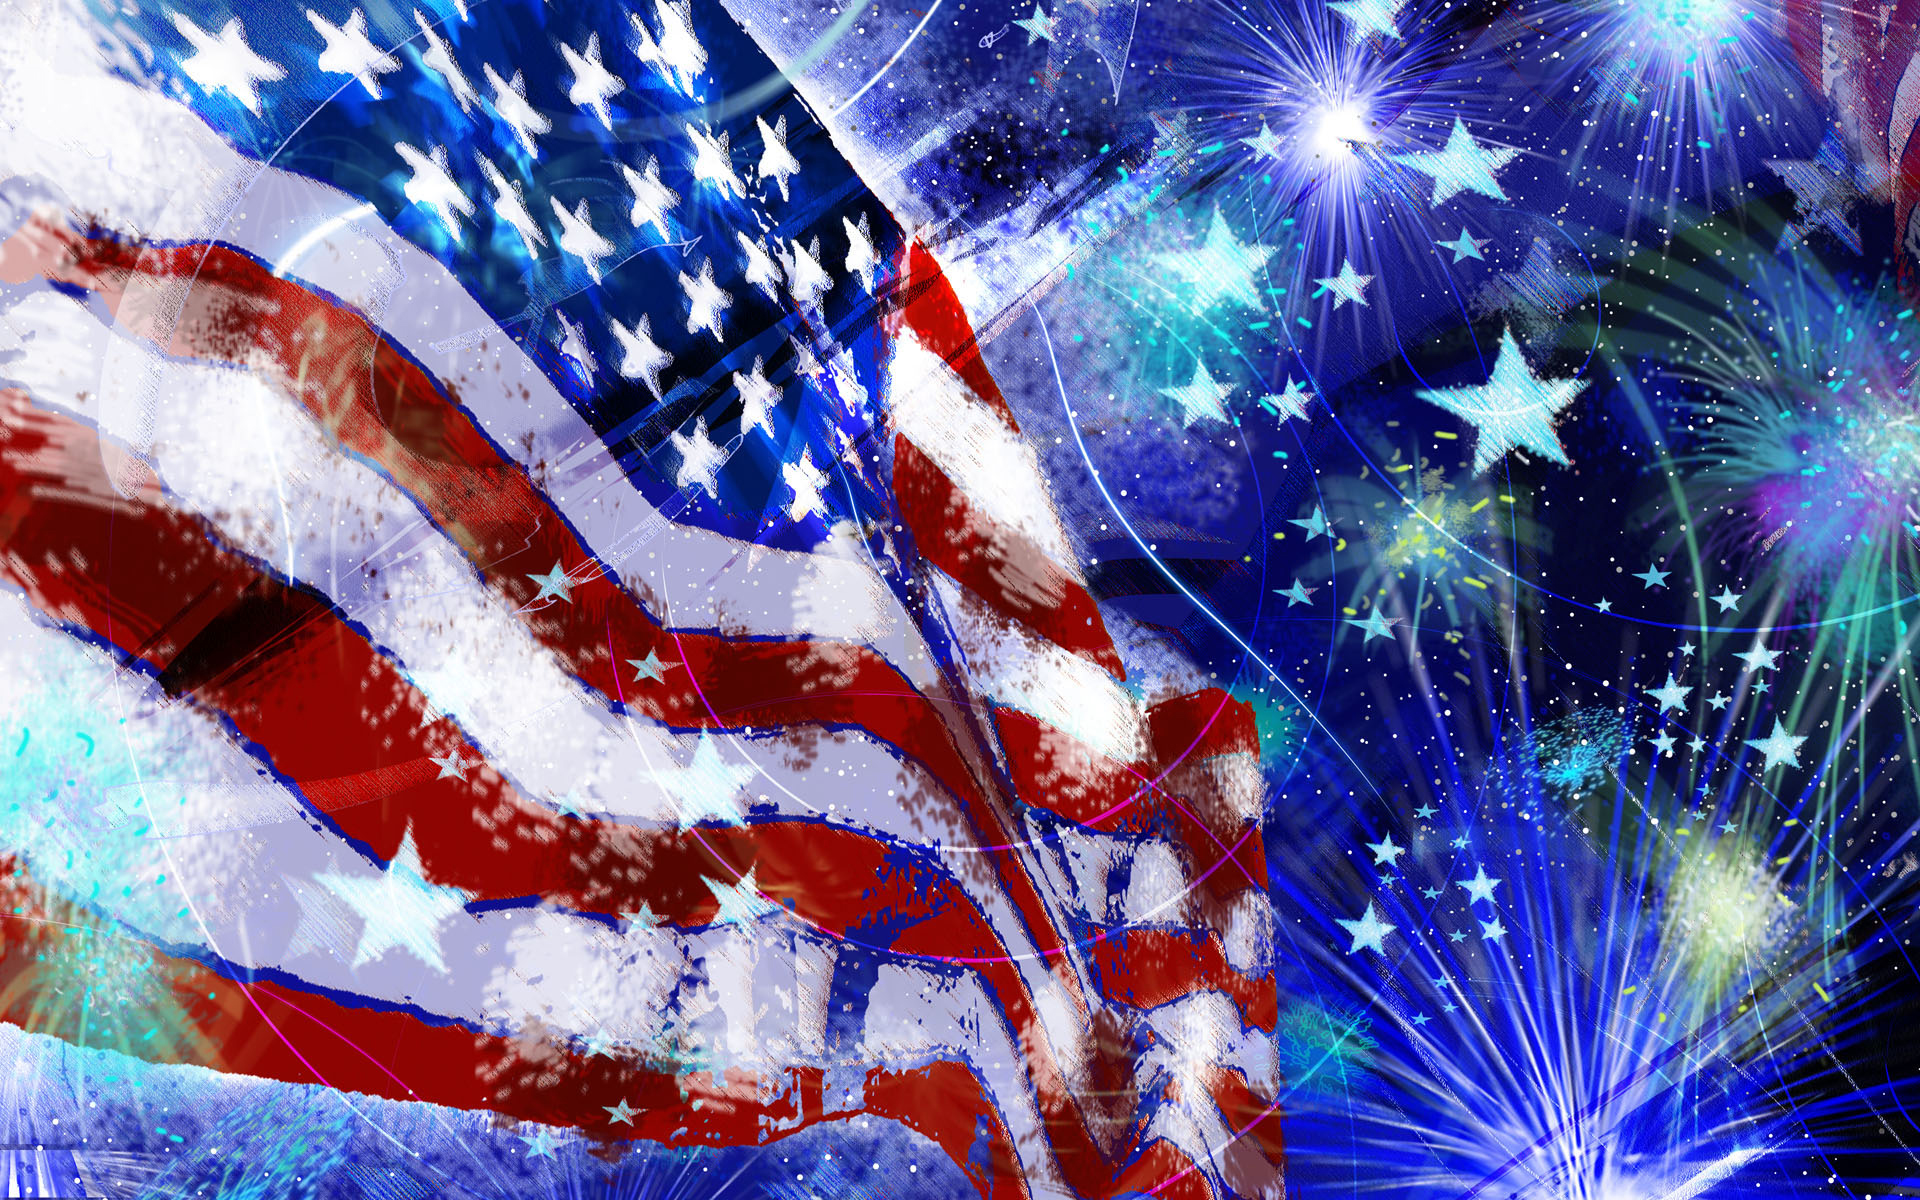 Happy 4th of July Birthday Images For Independence Day 2019